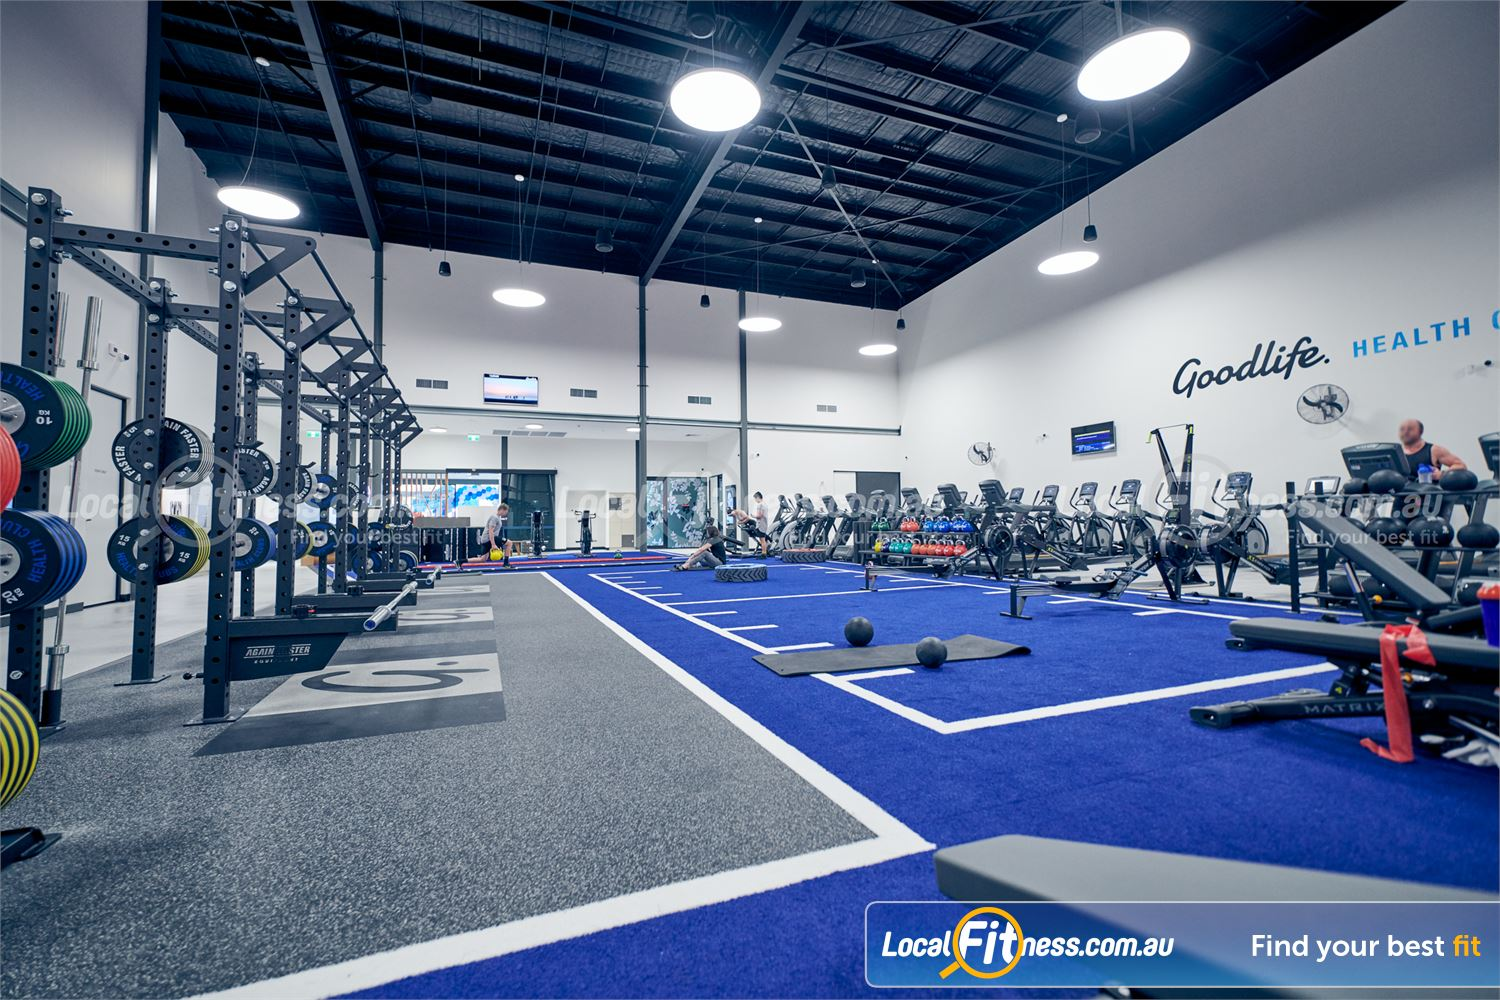 Goodlife Health Clubs Ringwood The new Goodlife Ringwood gym is opening soon.